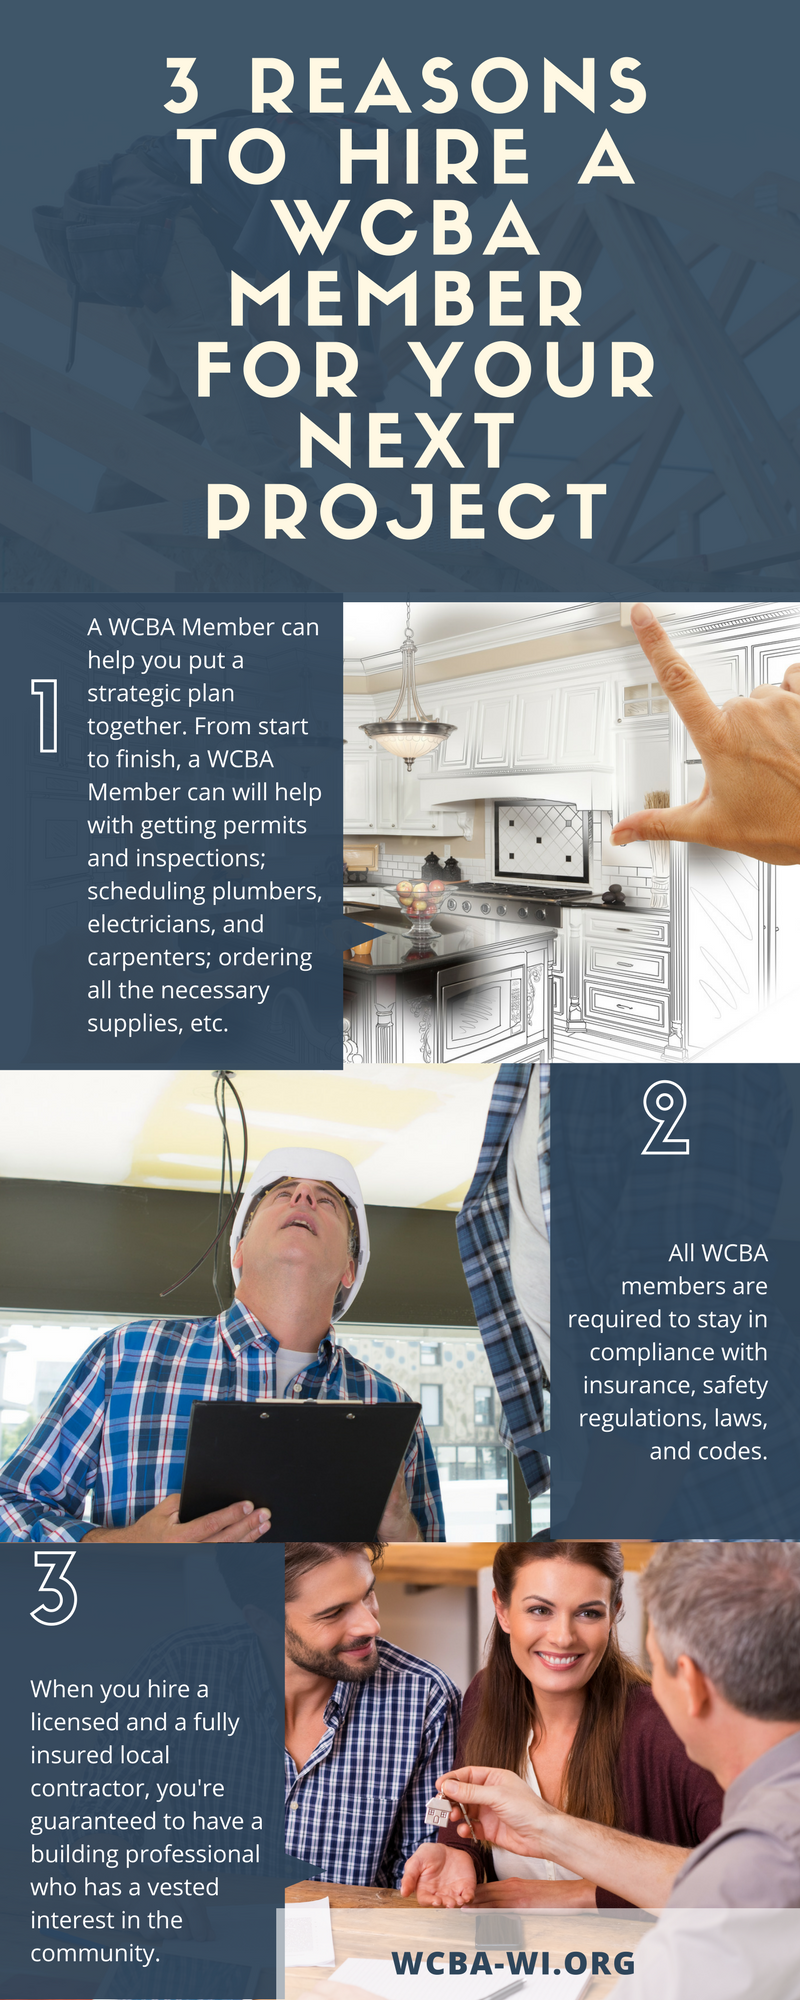 WCBA Info Graphic on Choosing a General Contractor